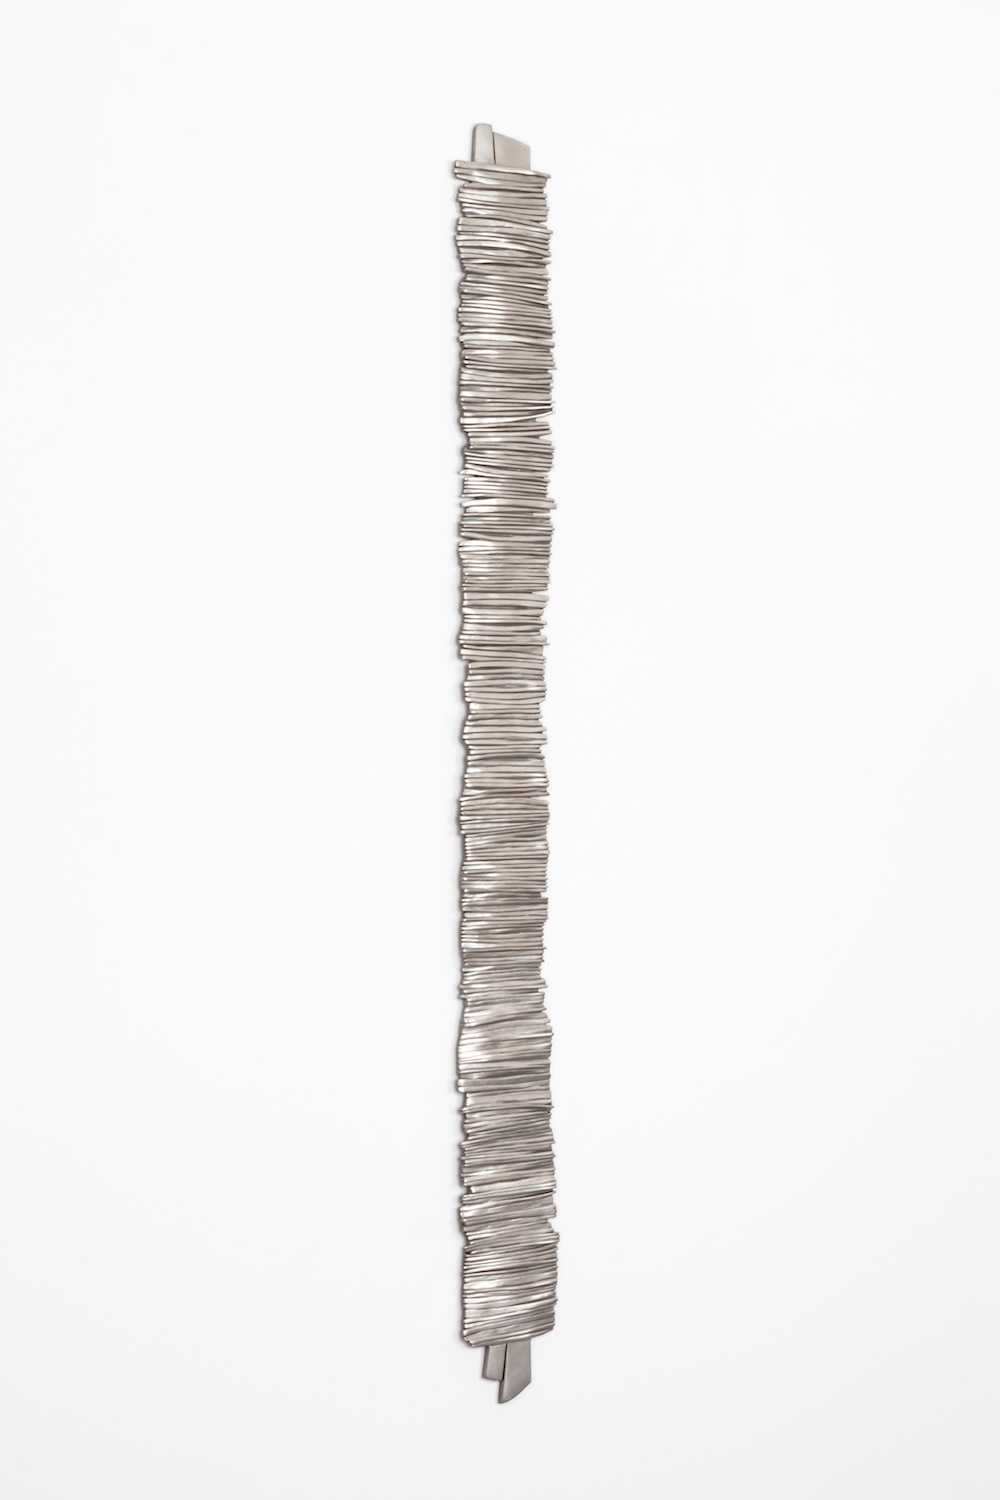 "Anthony Pearson Untitled (Tablet) 2012 Bronze relief with silver nitrate patina 51 1/2"" x 4 1/2"" AP319"